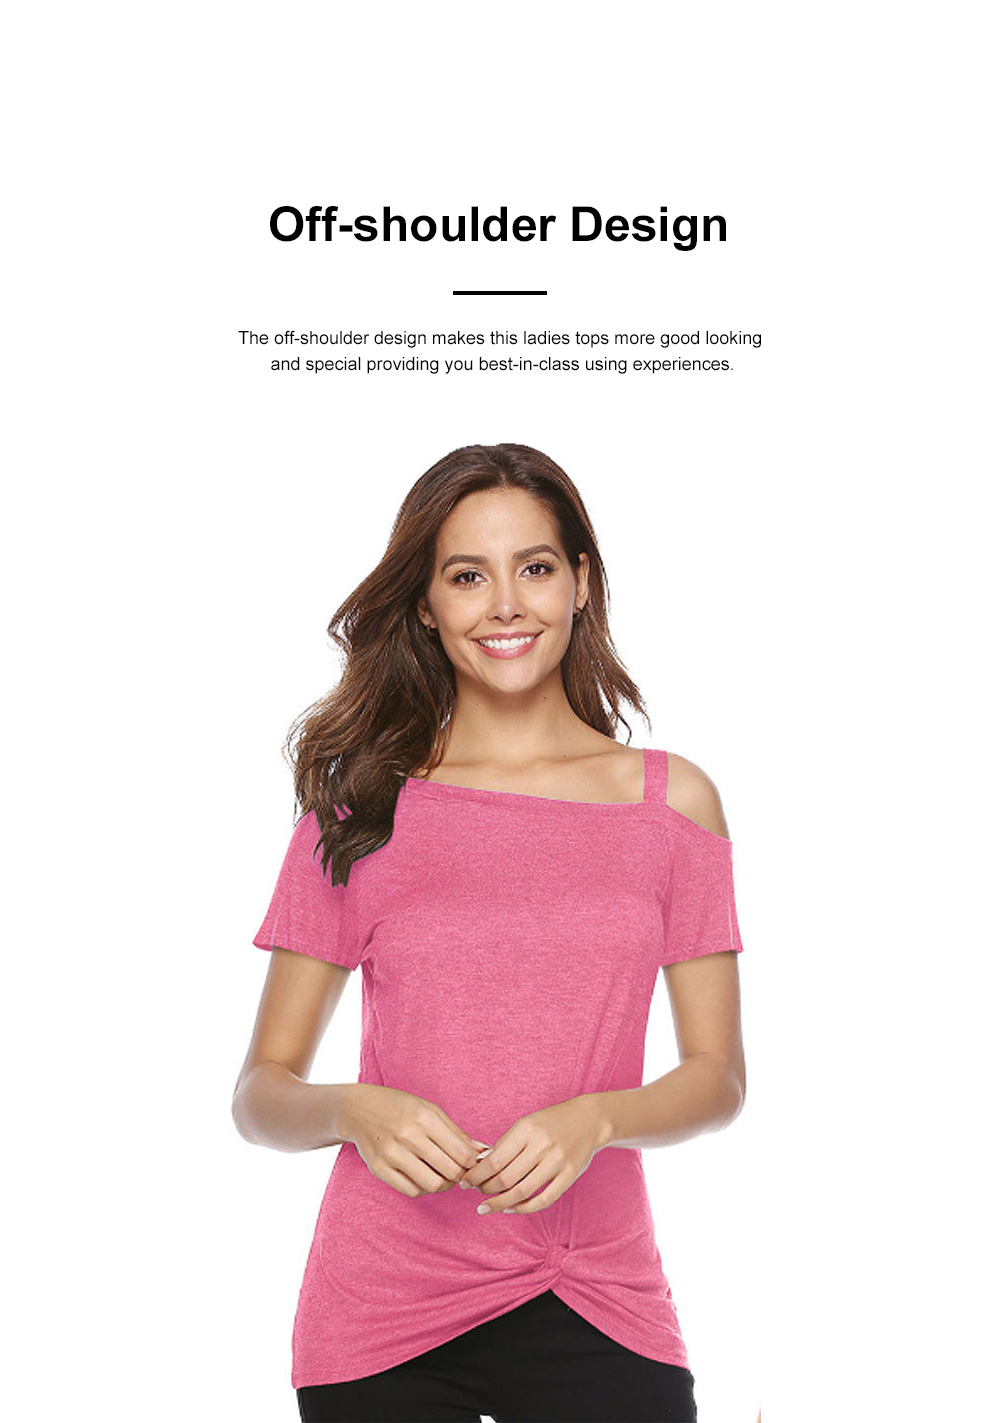 Minimalist Fashion Kink Decoration Off-Shoulder Women T-shirt, Ultra-soft Casual Pure Color Tops for Ladies 1